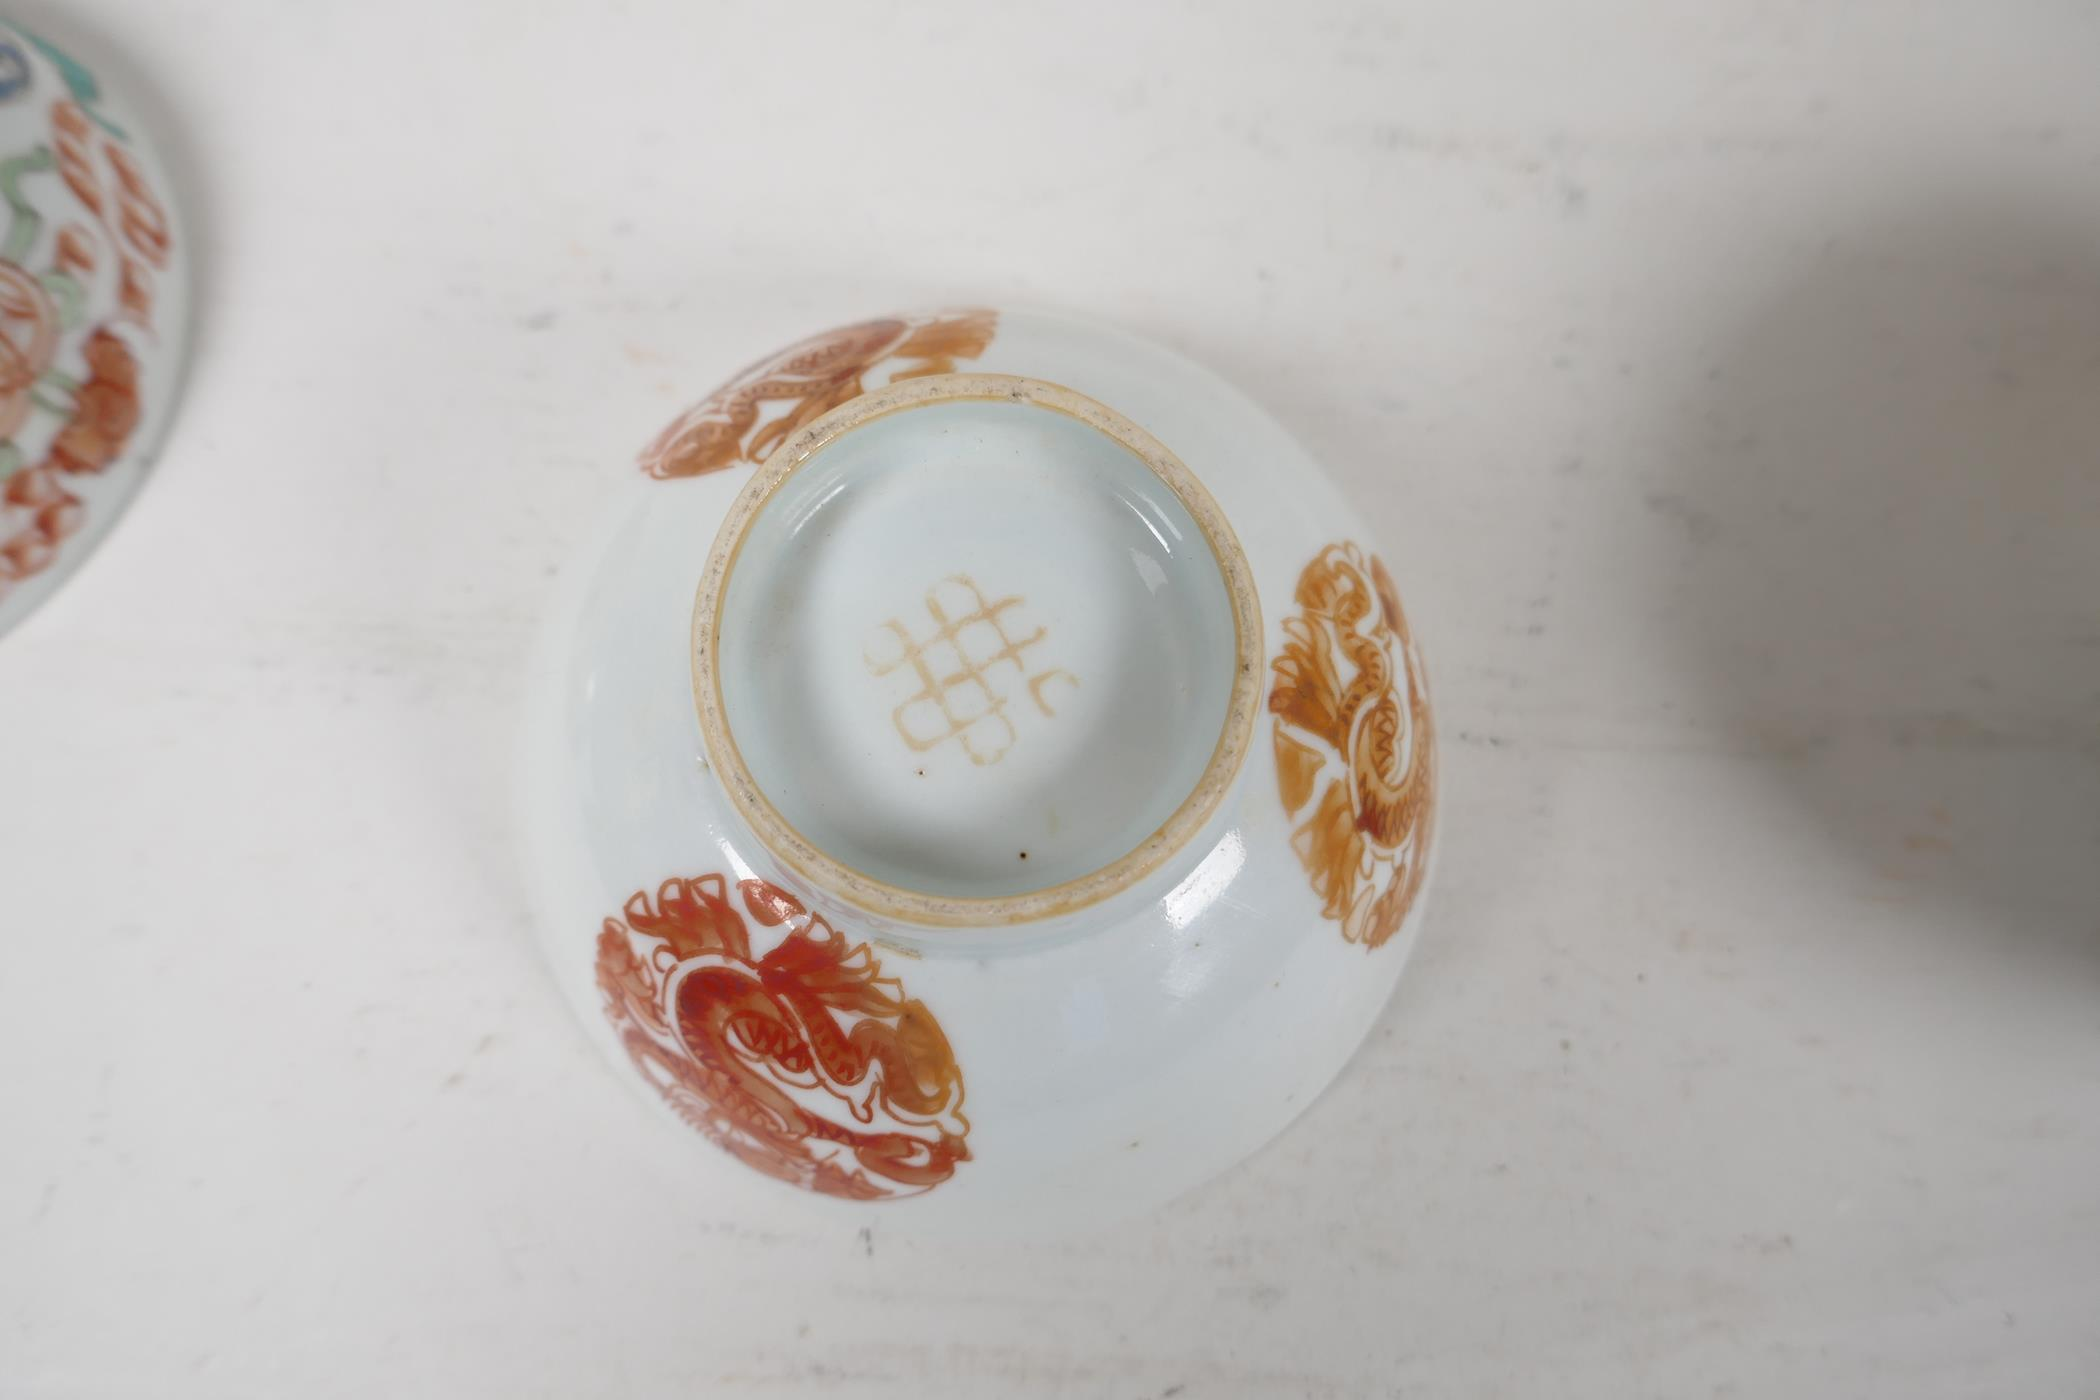 Six assorted Chinese republic period porcelain tea bowls with famille rose and vert enamel - Image 5 of 7